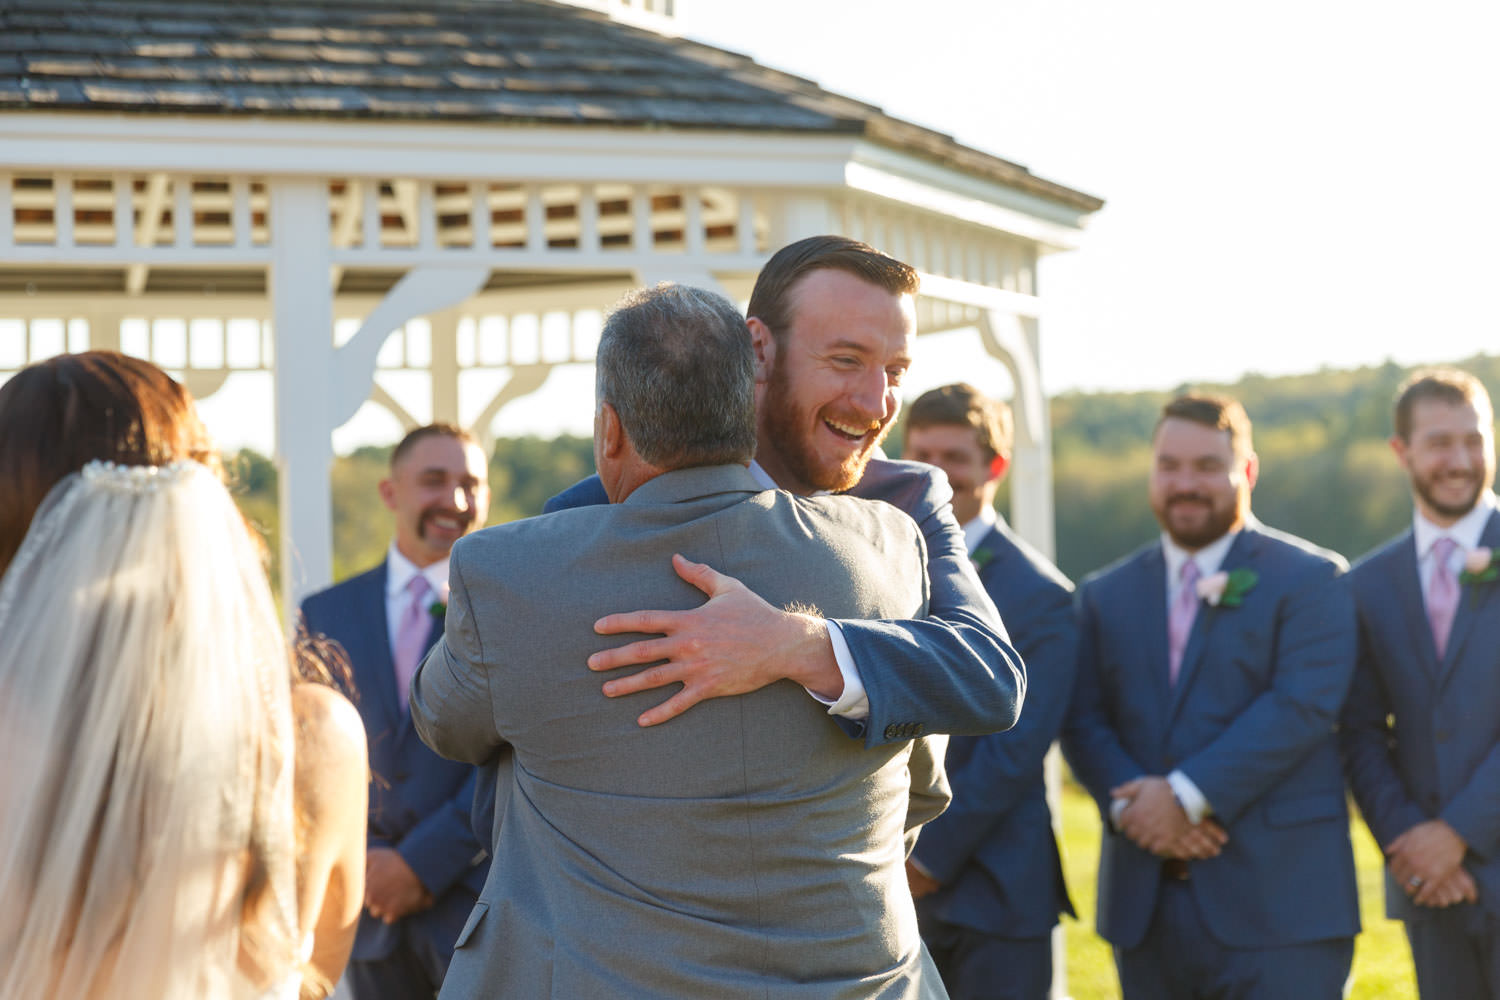 Father of the bride and groom hug at beginning of ceremony